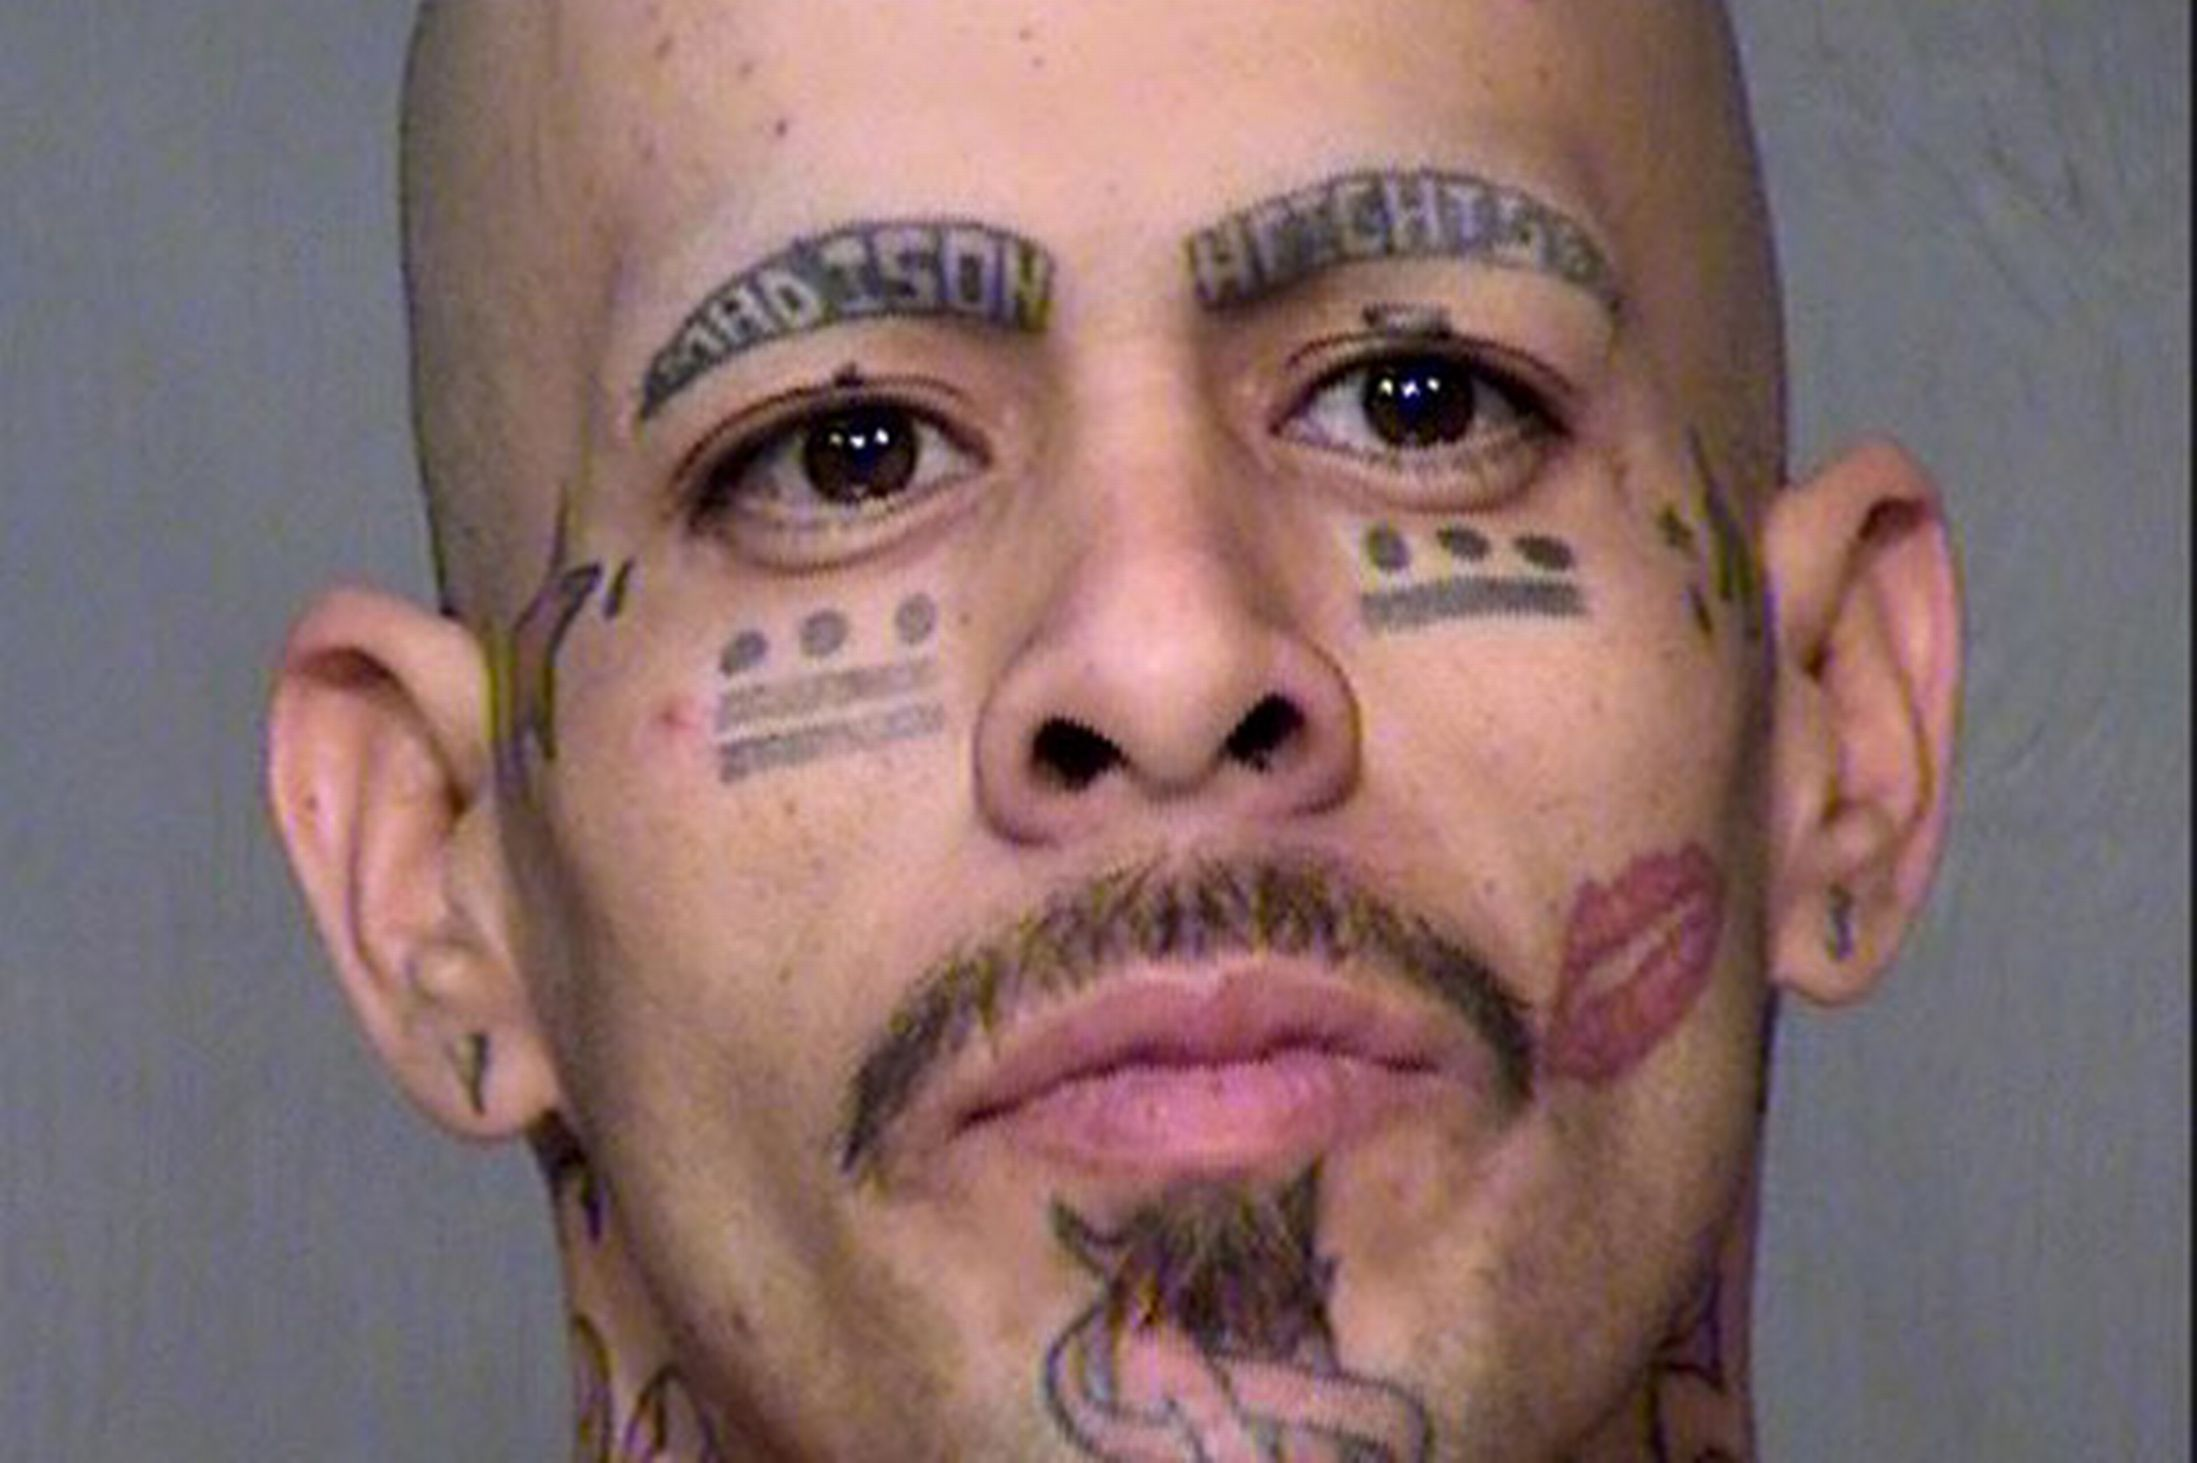 Horrible tattoo ideas - Rogues Gallery Horrendous Haircuts Terrible Tattoos And Awful Outfits In The Stupidest Mugshots Ever